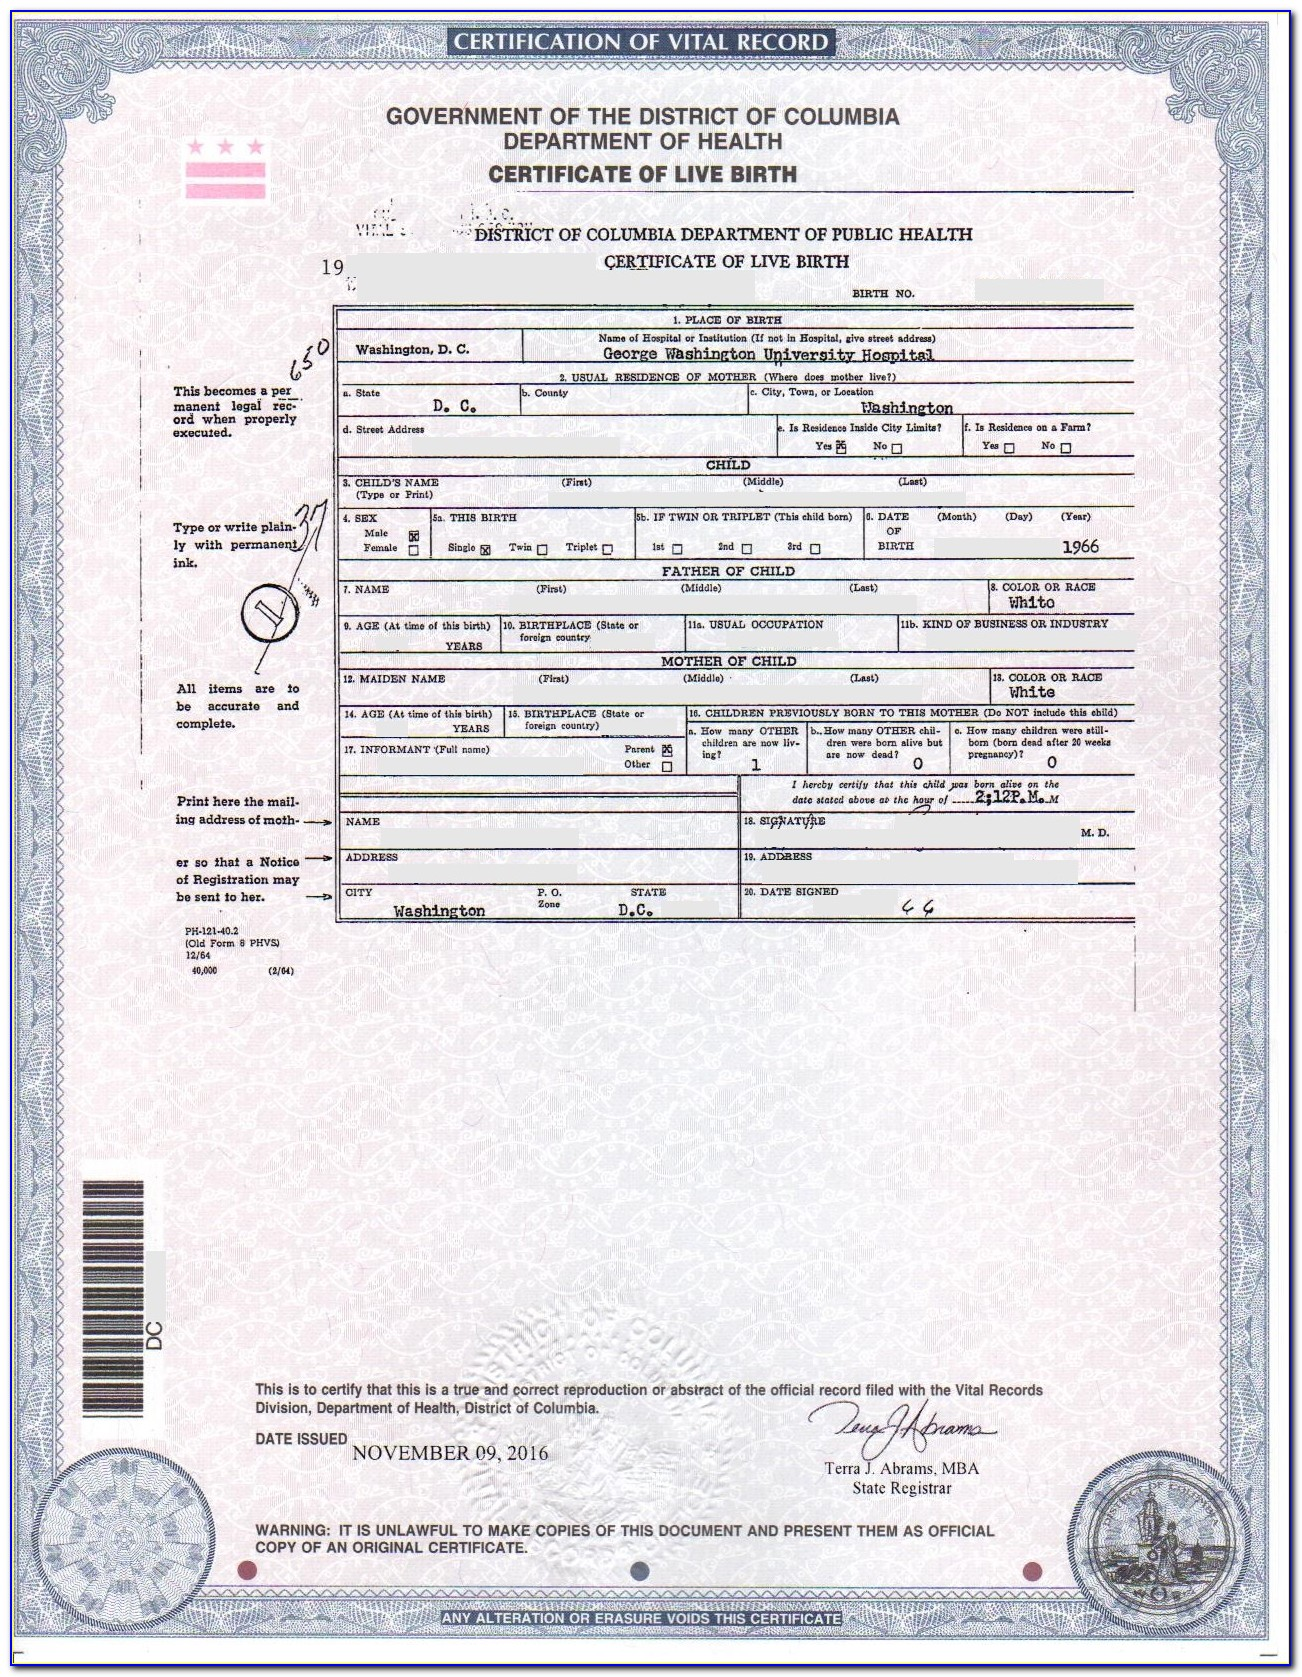 Where Can I Get A Birth Certificate In Tacoma Washington